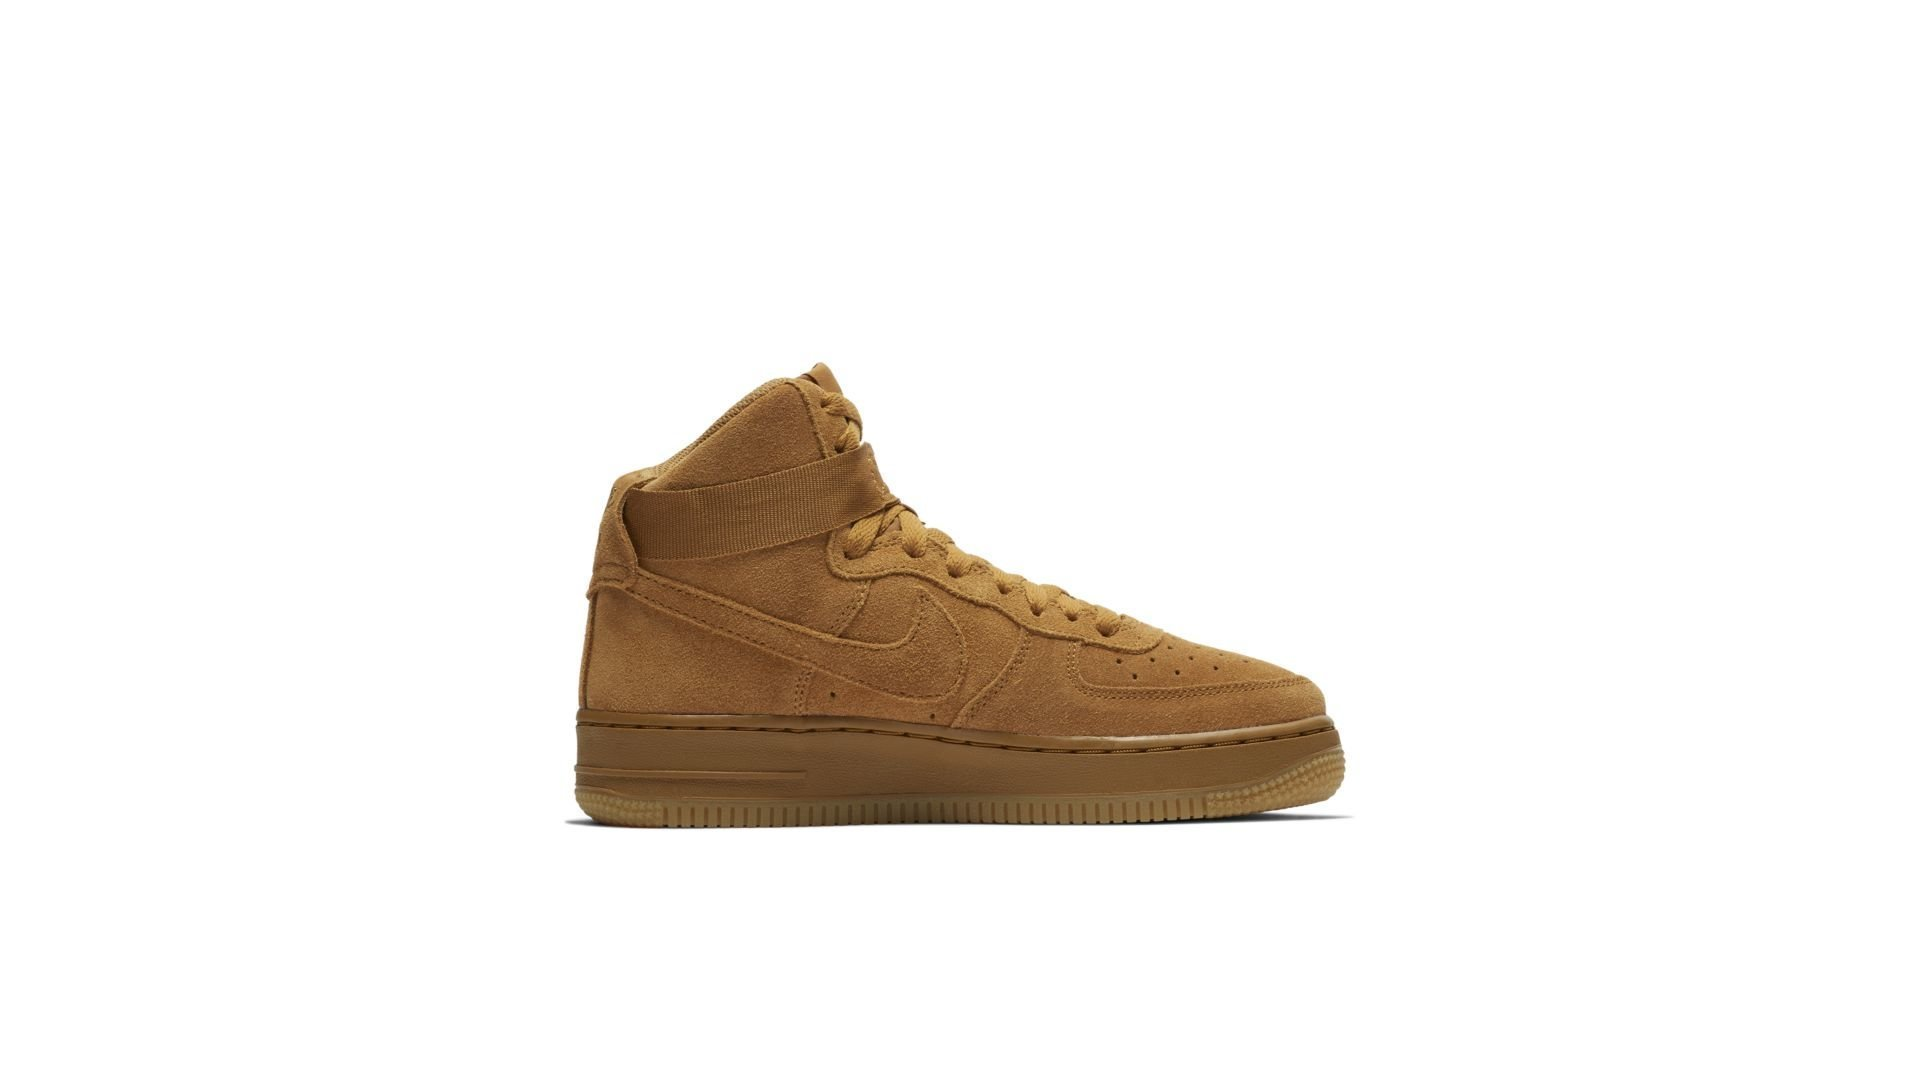 Nike Air Force 1 High Wheat Gum 2018 (GS) (807617-701)